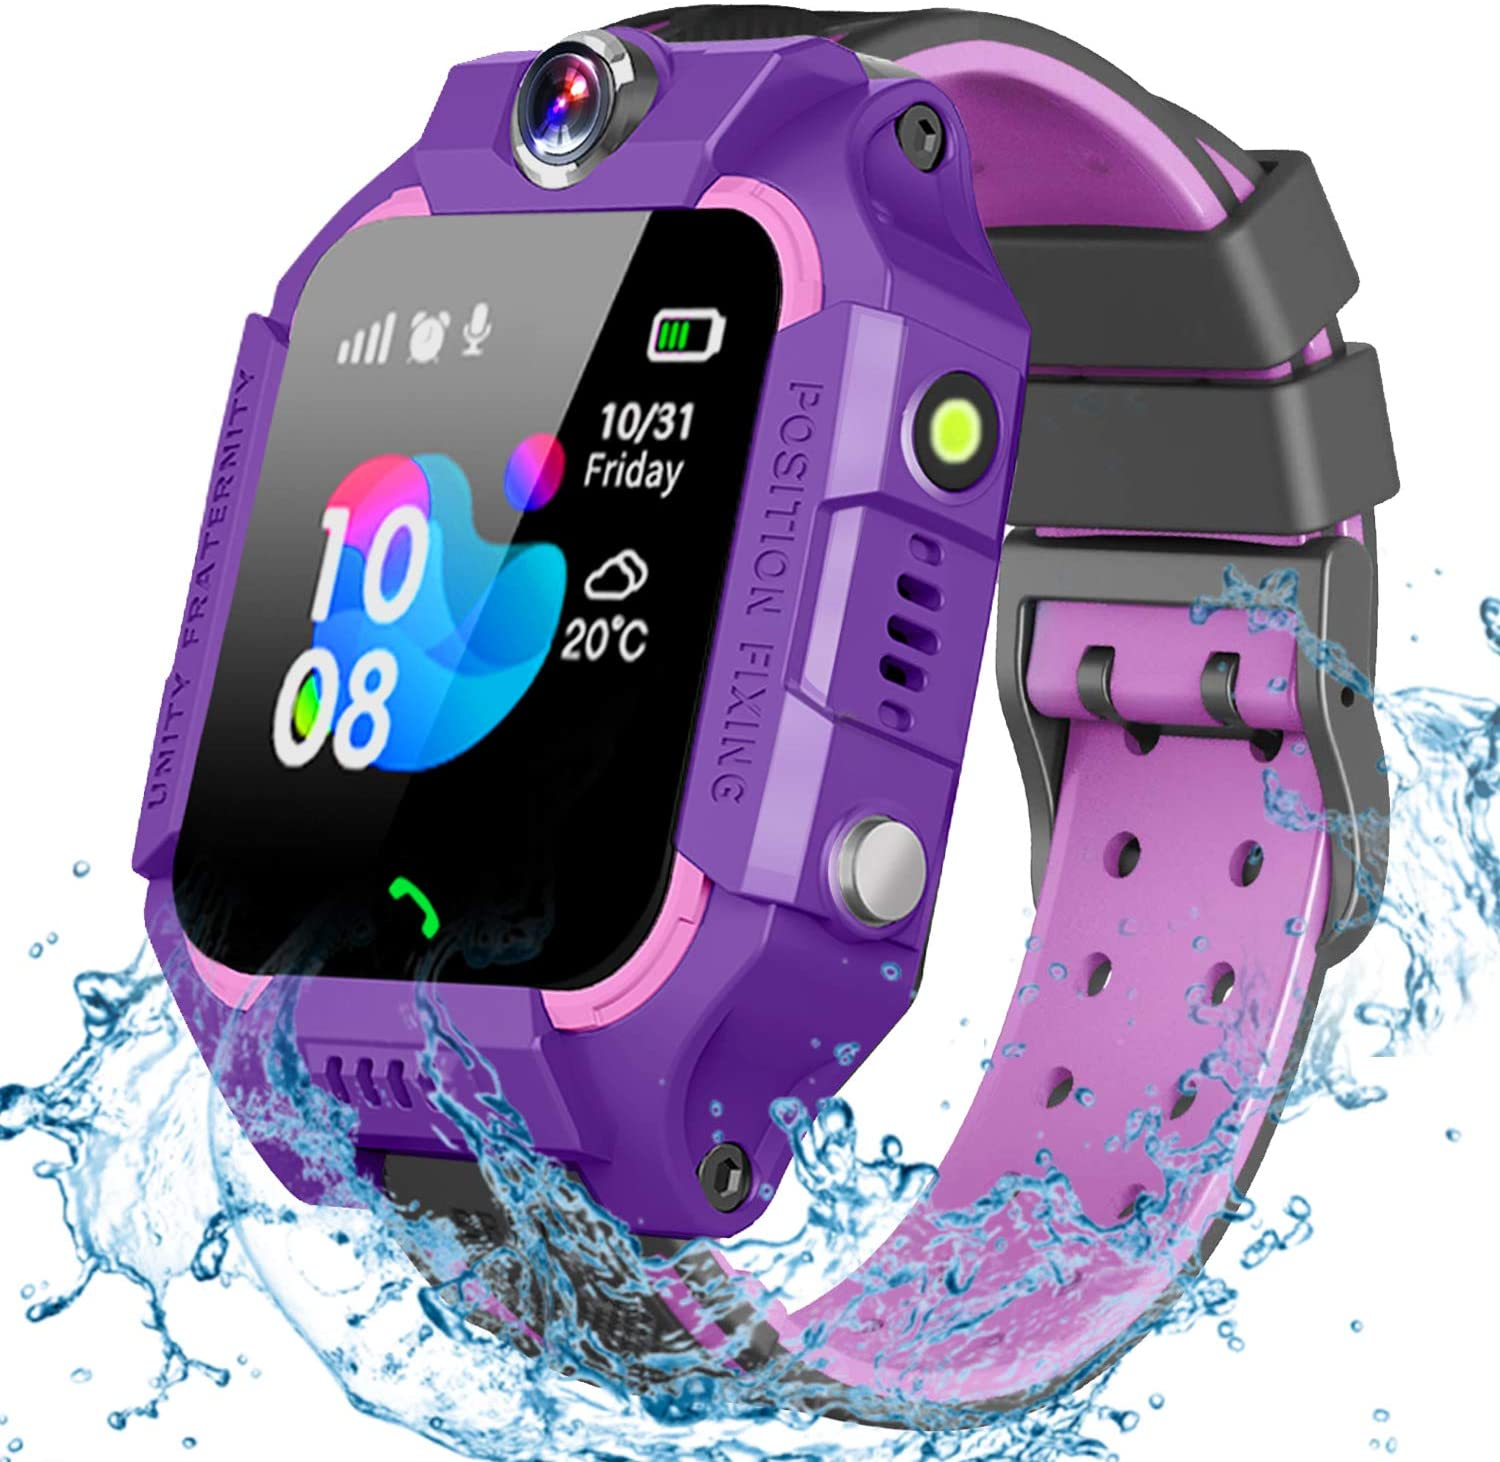 gbd smartwatch for kids purple color isolated on white background